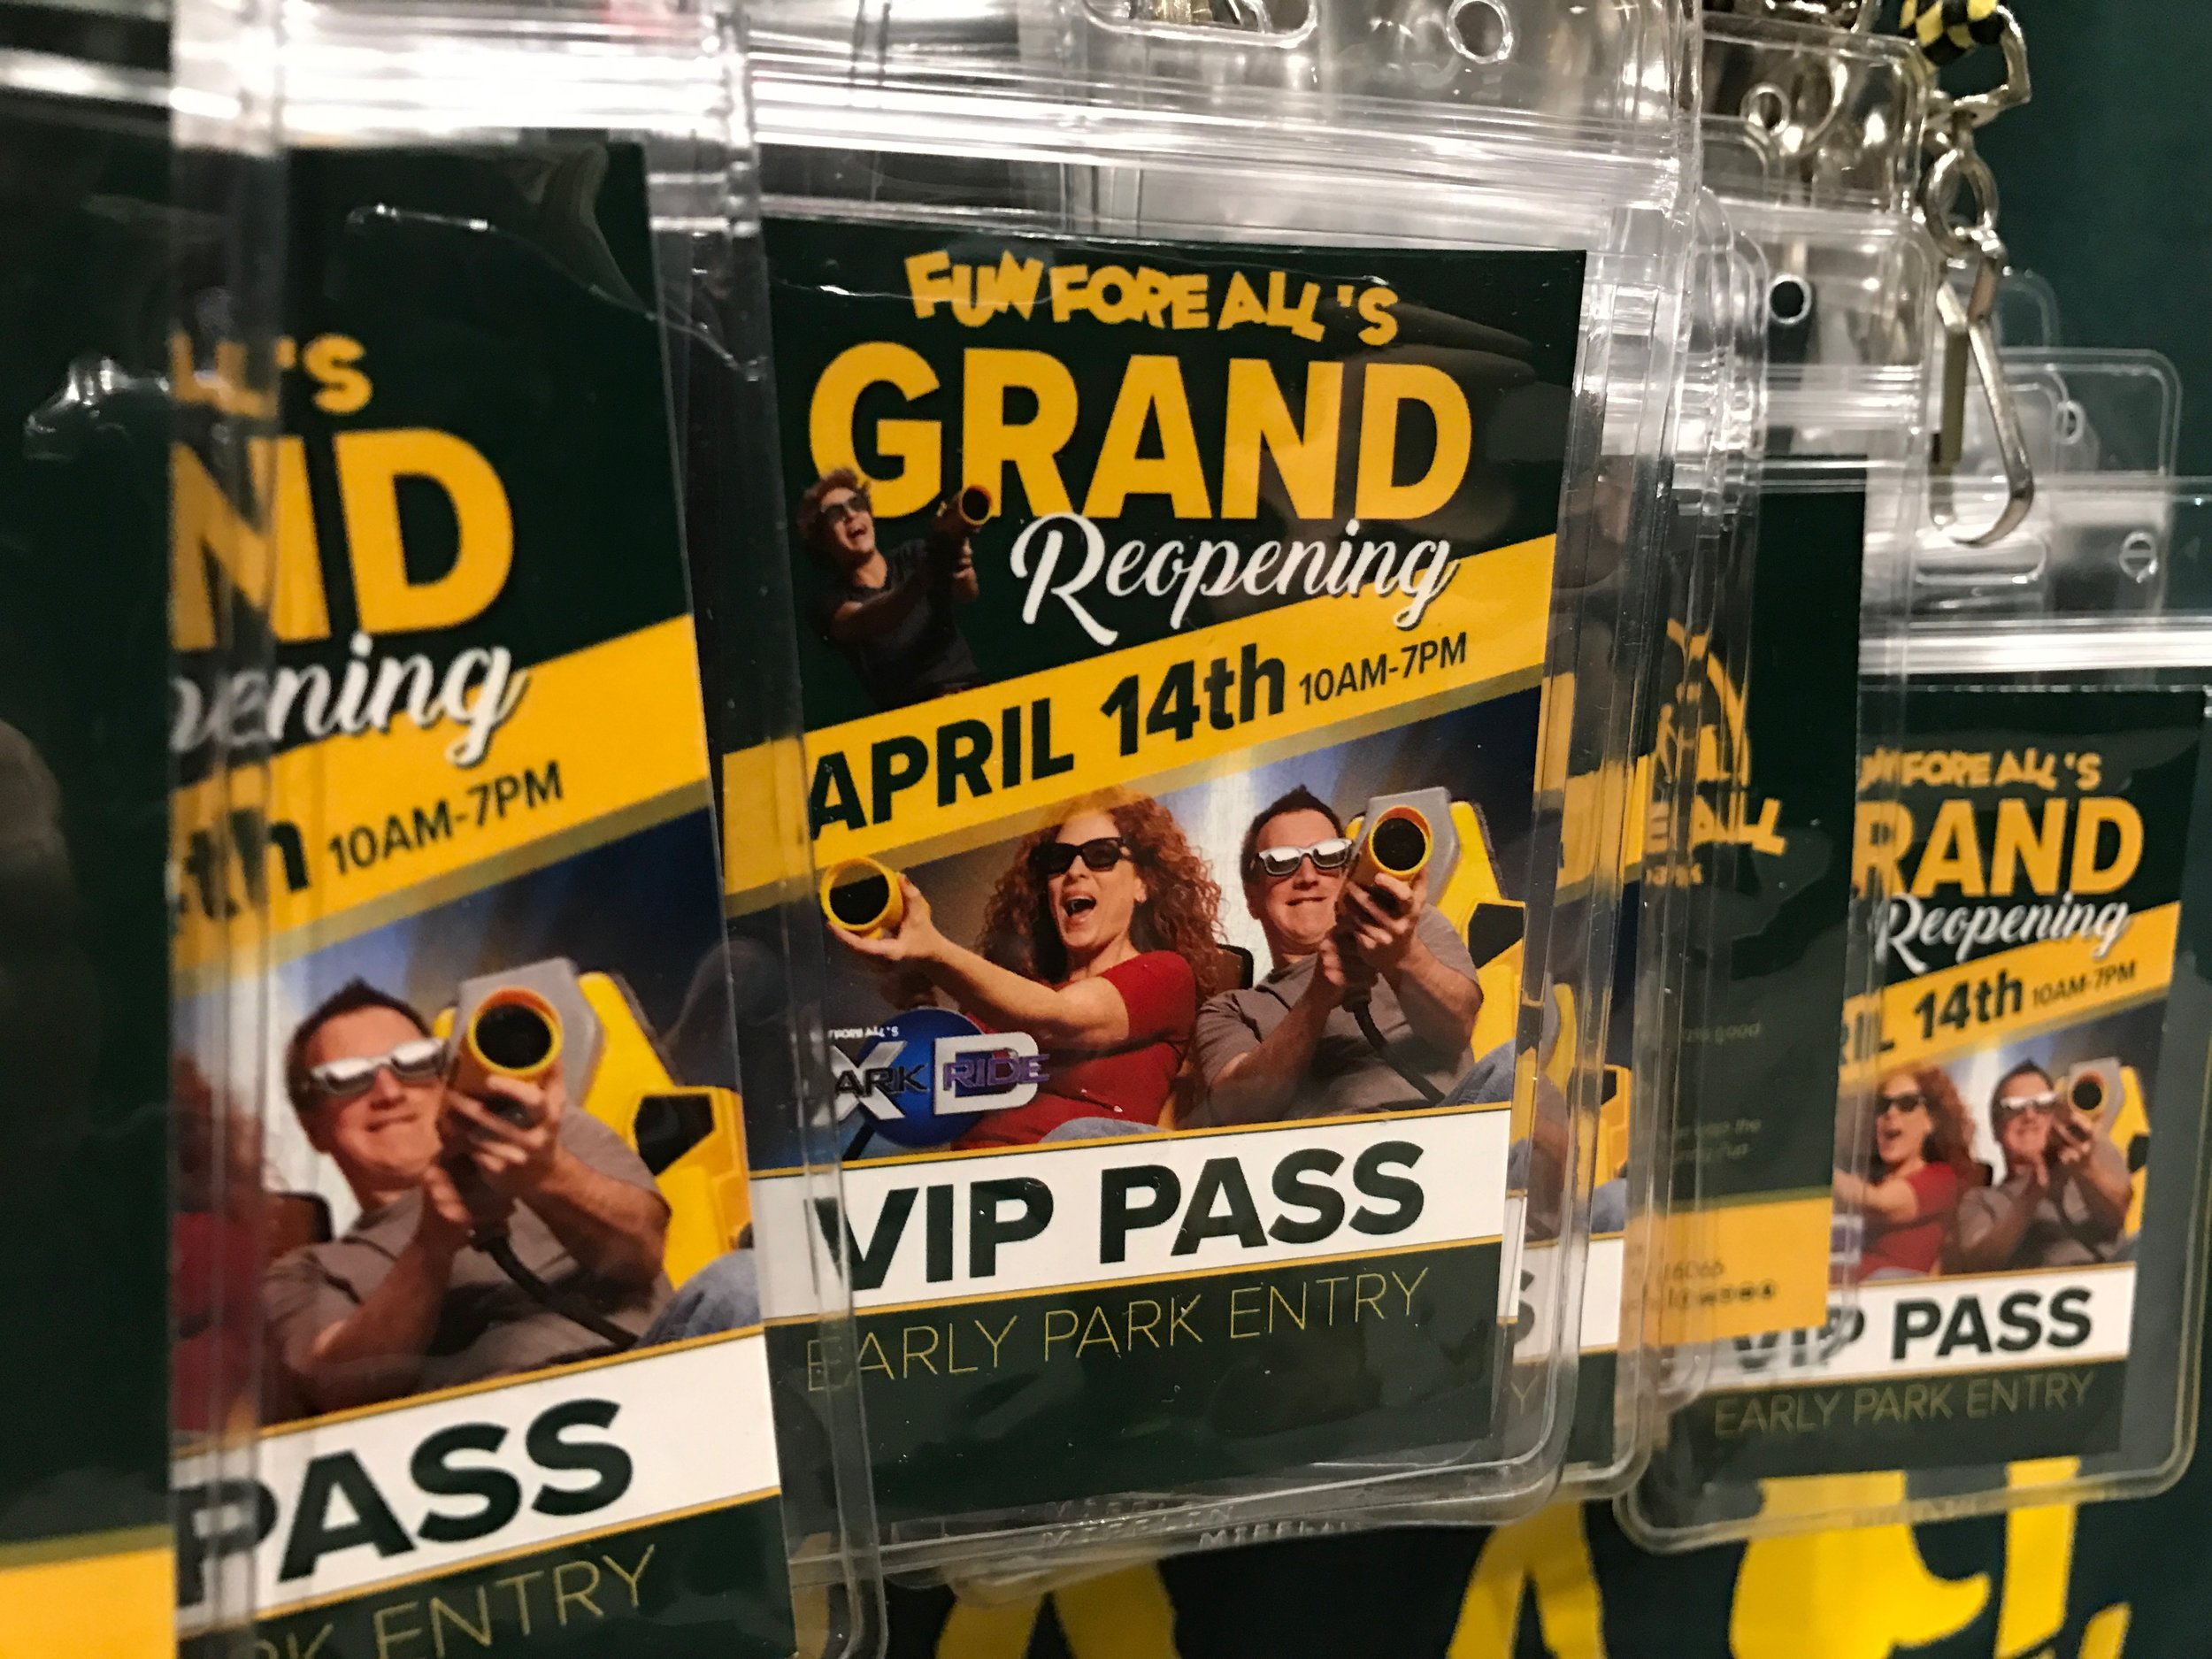 GRAND REOPENING <br> VIP PASSES